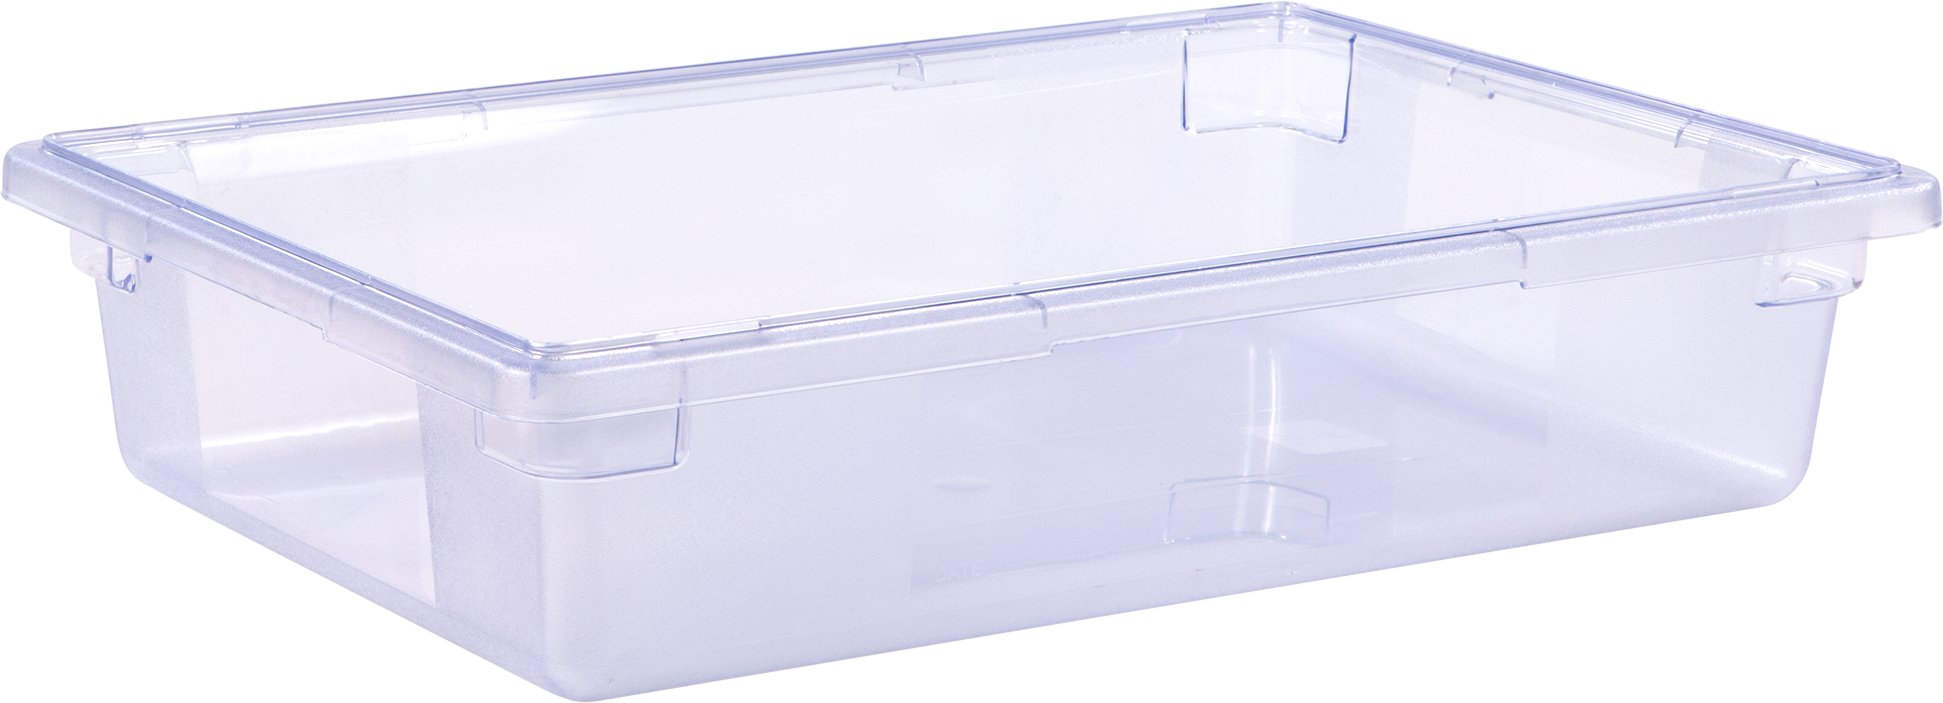 Carlisle 10621C14 StorPlus Color-Coded Food Storage Container Only, 8.5 Gallon, Blue (Pack of 6)